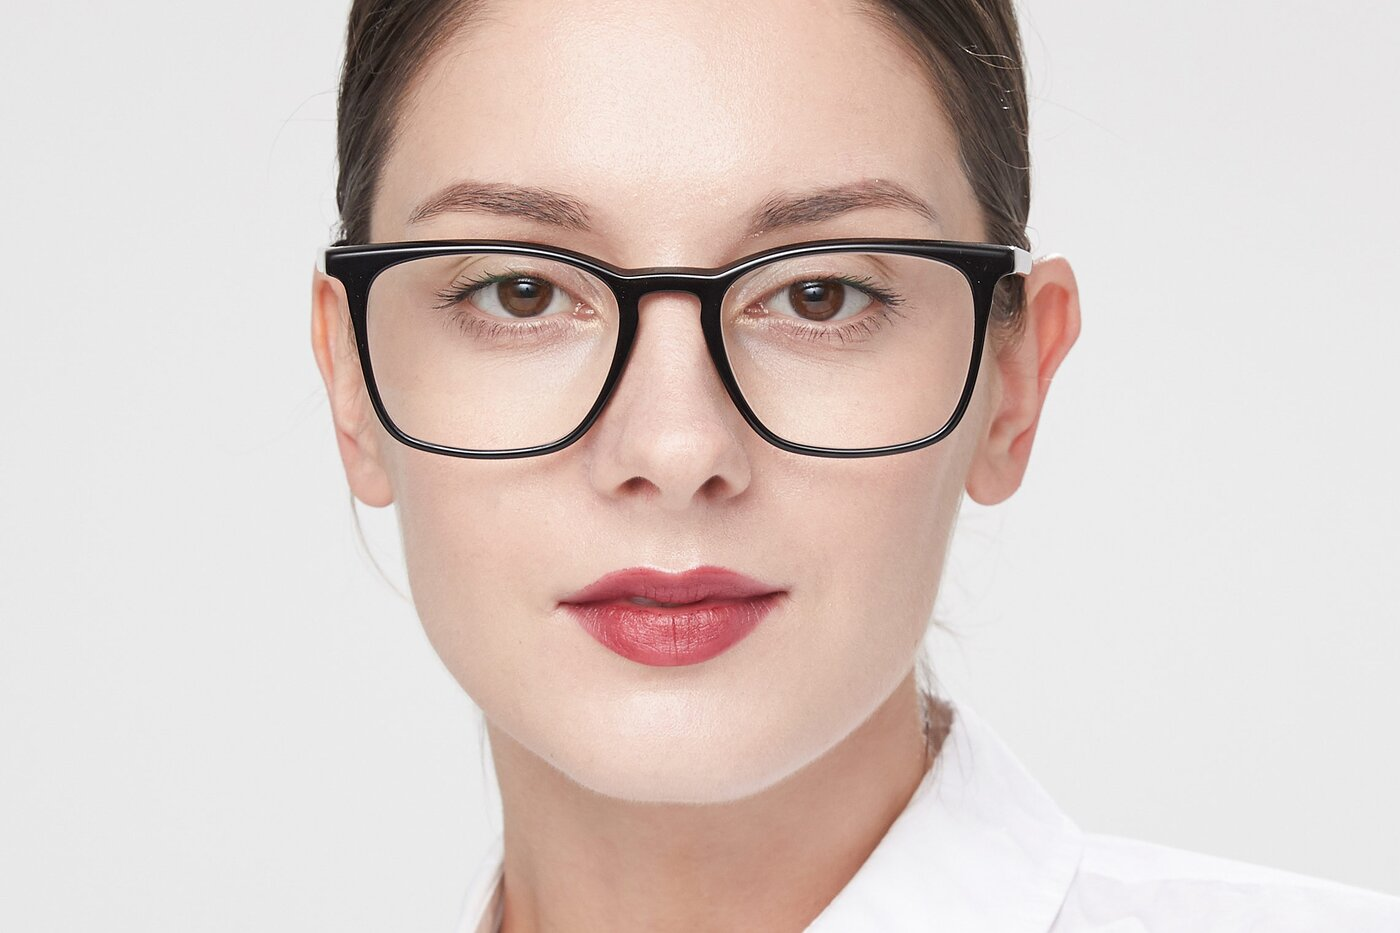 Black Keyhole Bridge Acetate Square Eyeglasses